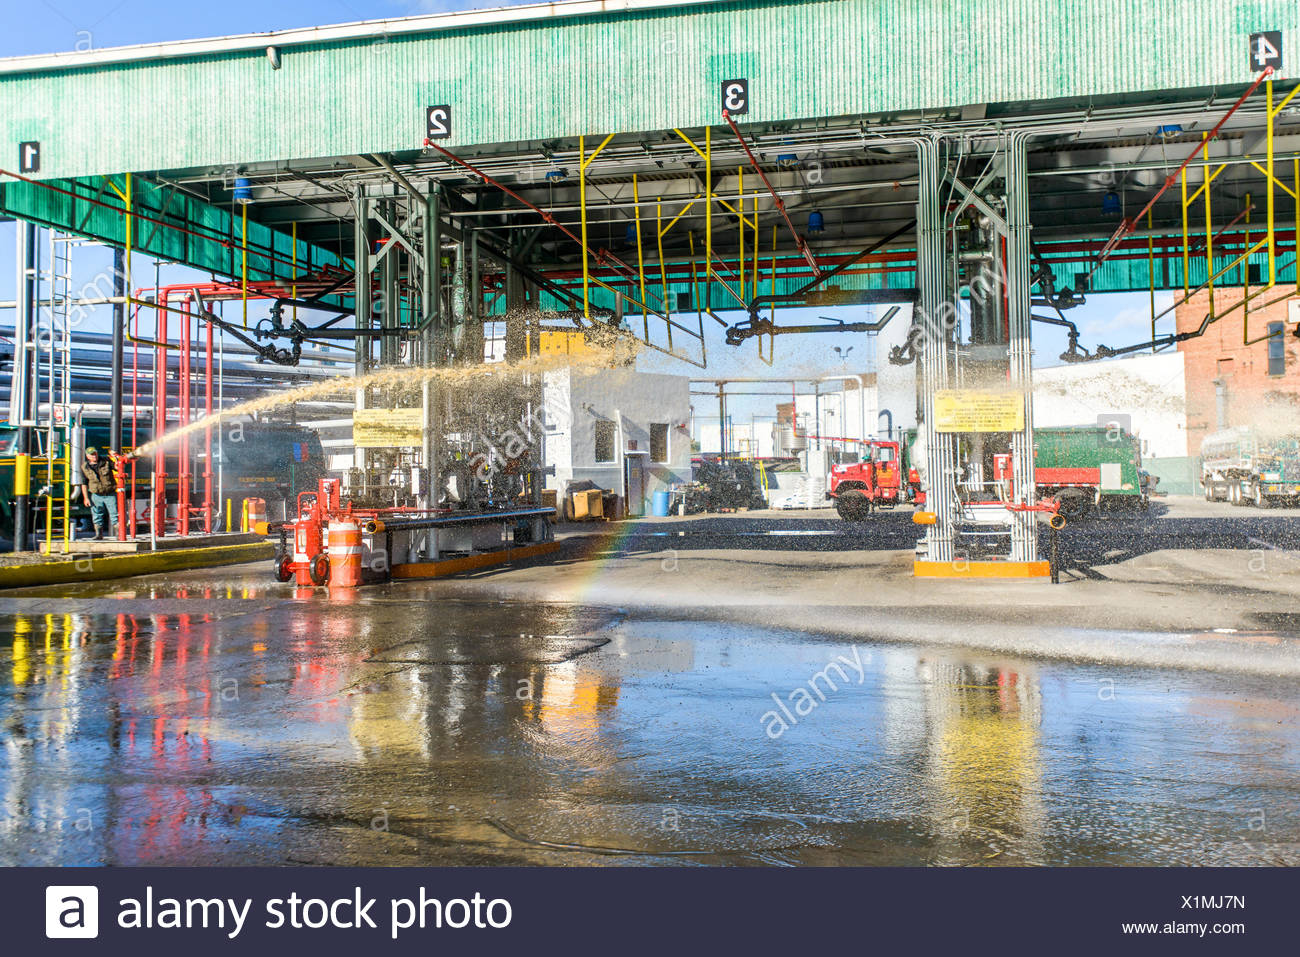 Worker pressure hosing biofuel oil tanker cleaning station at biofuel plant - Stock Image